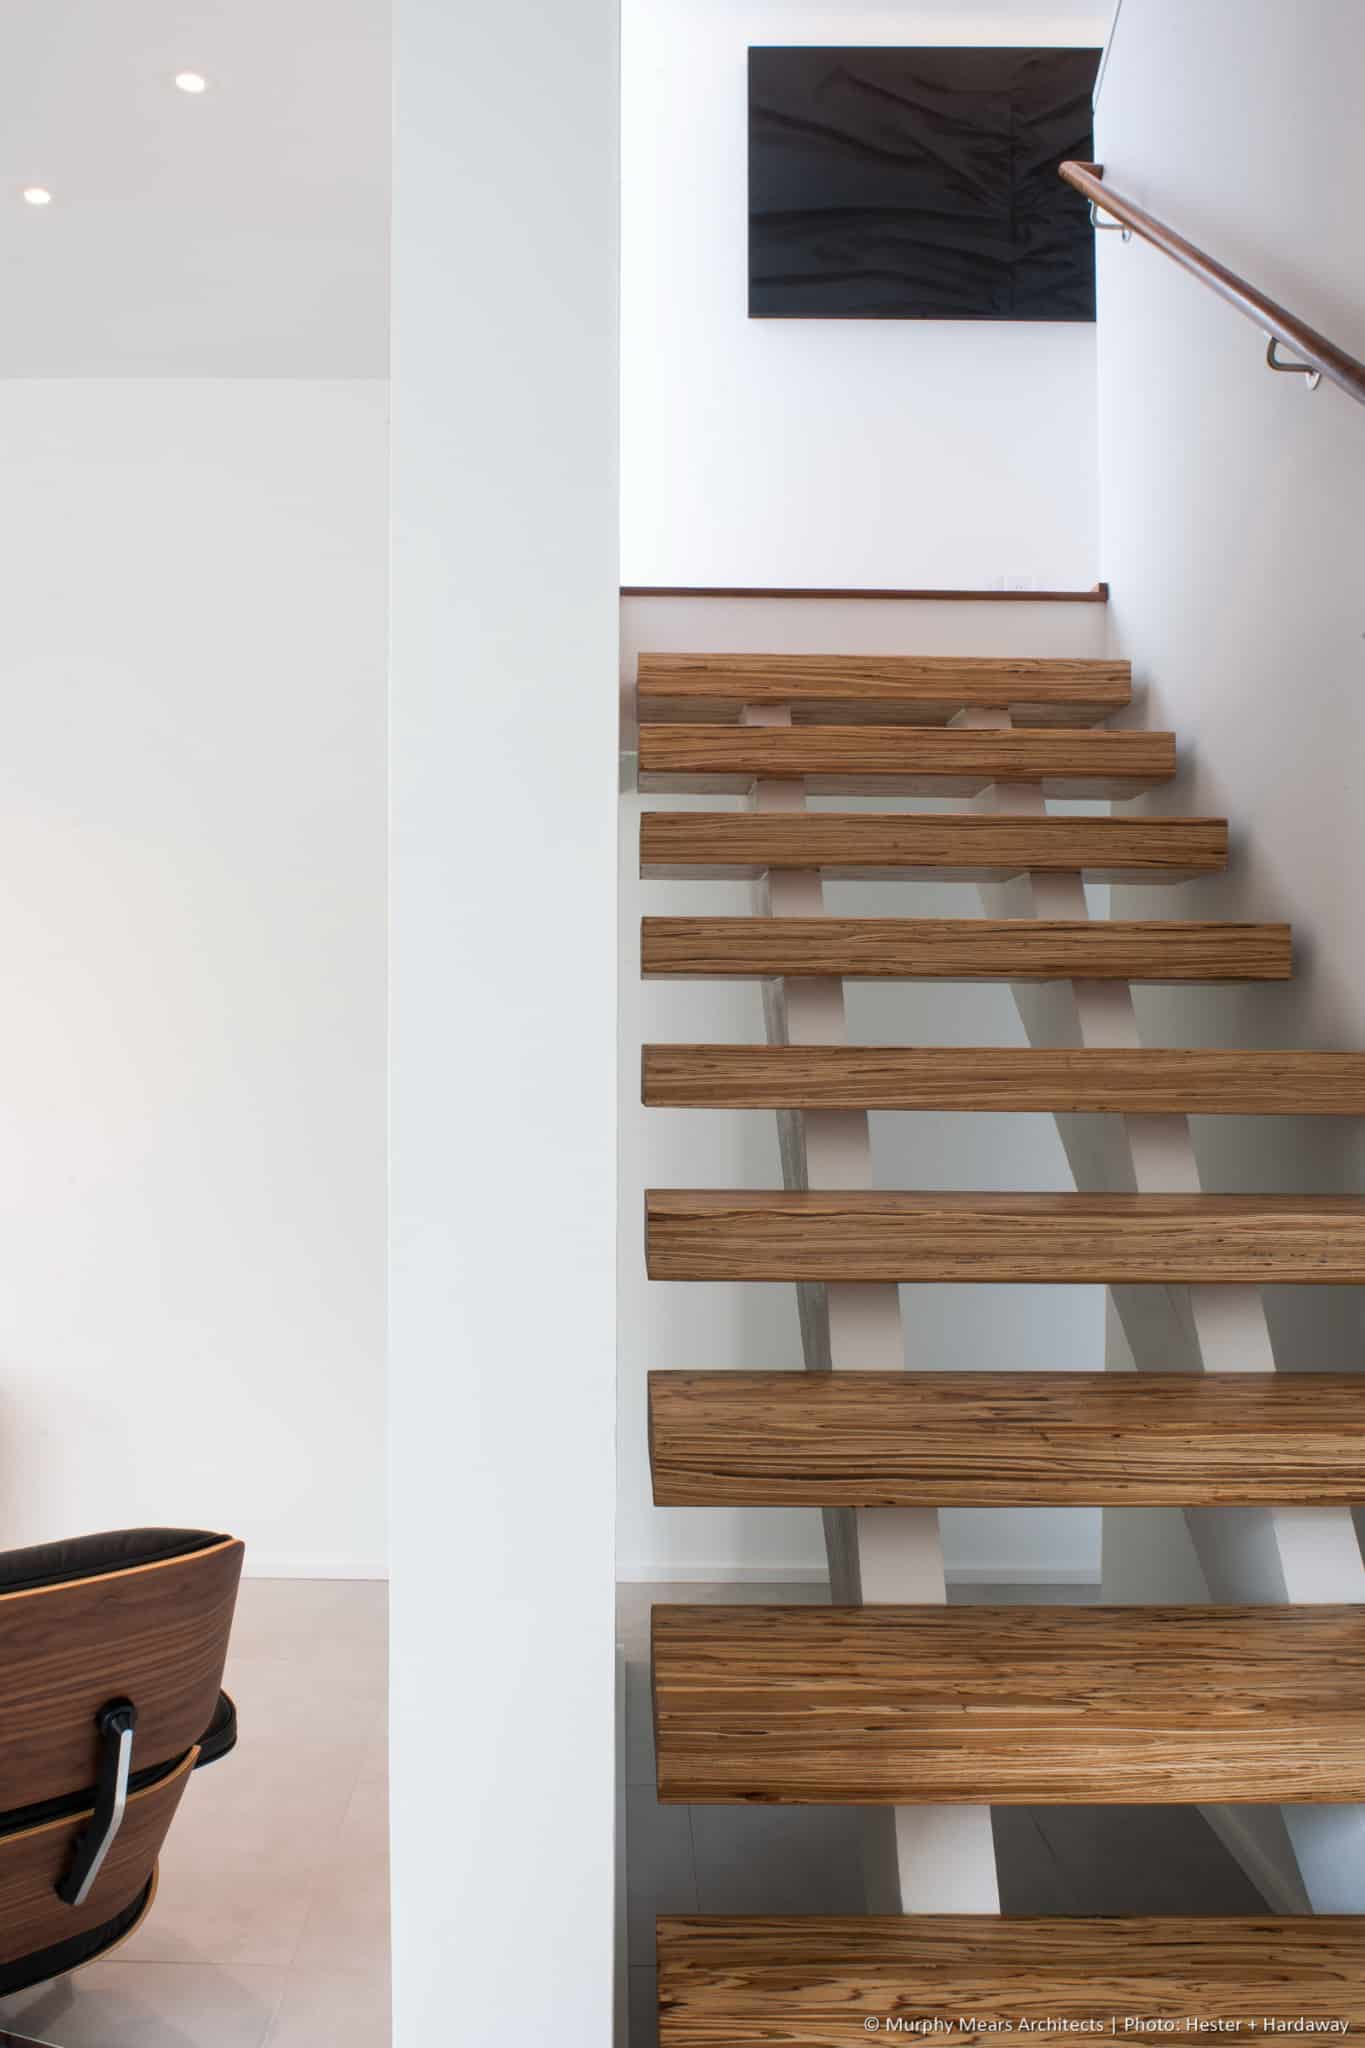 Open wood stair treads, with the passage to the A/V area visible below the intermediate stair landing.